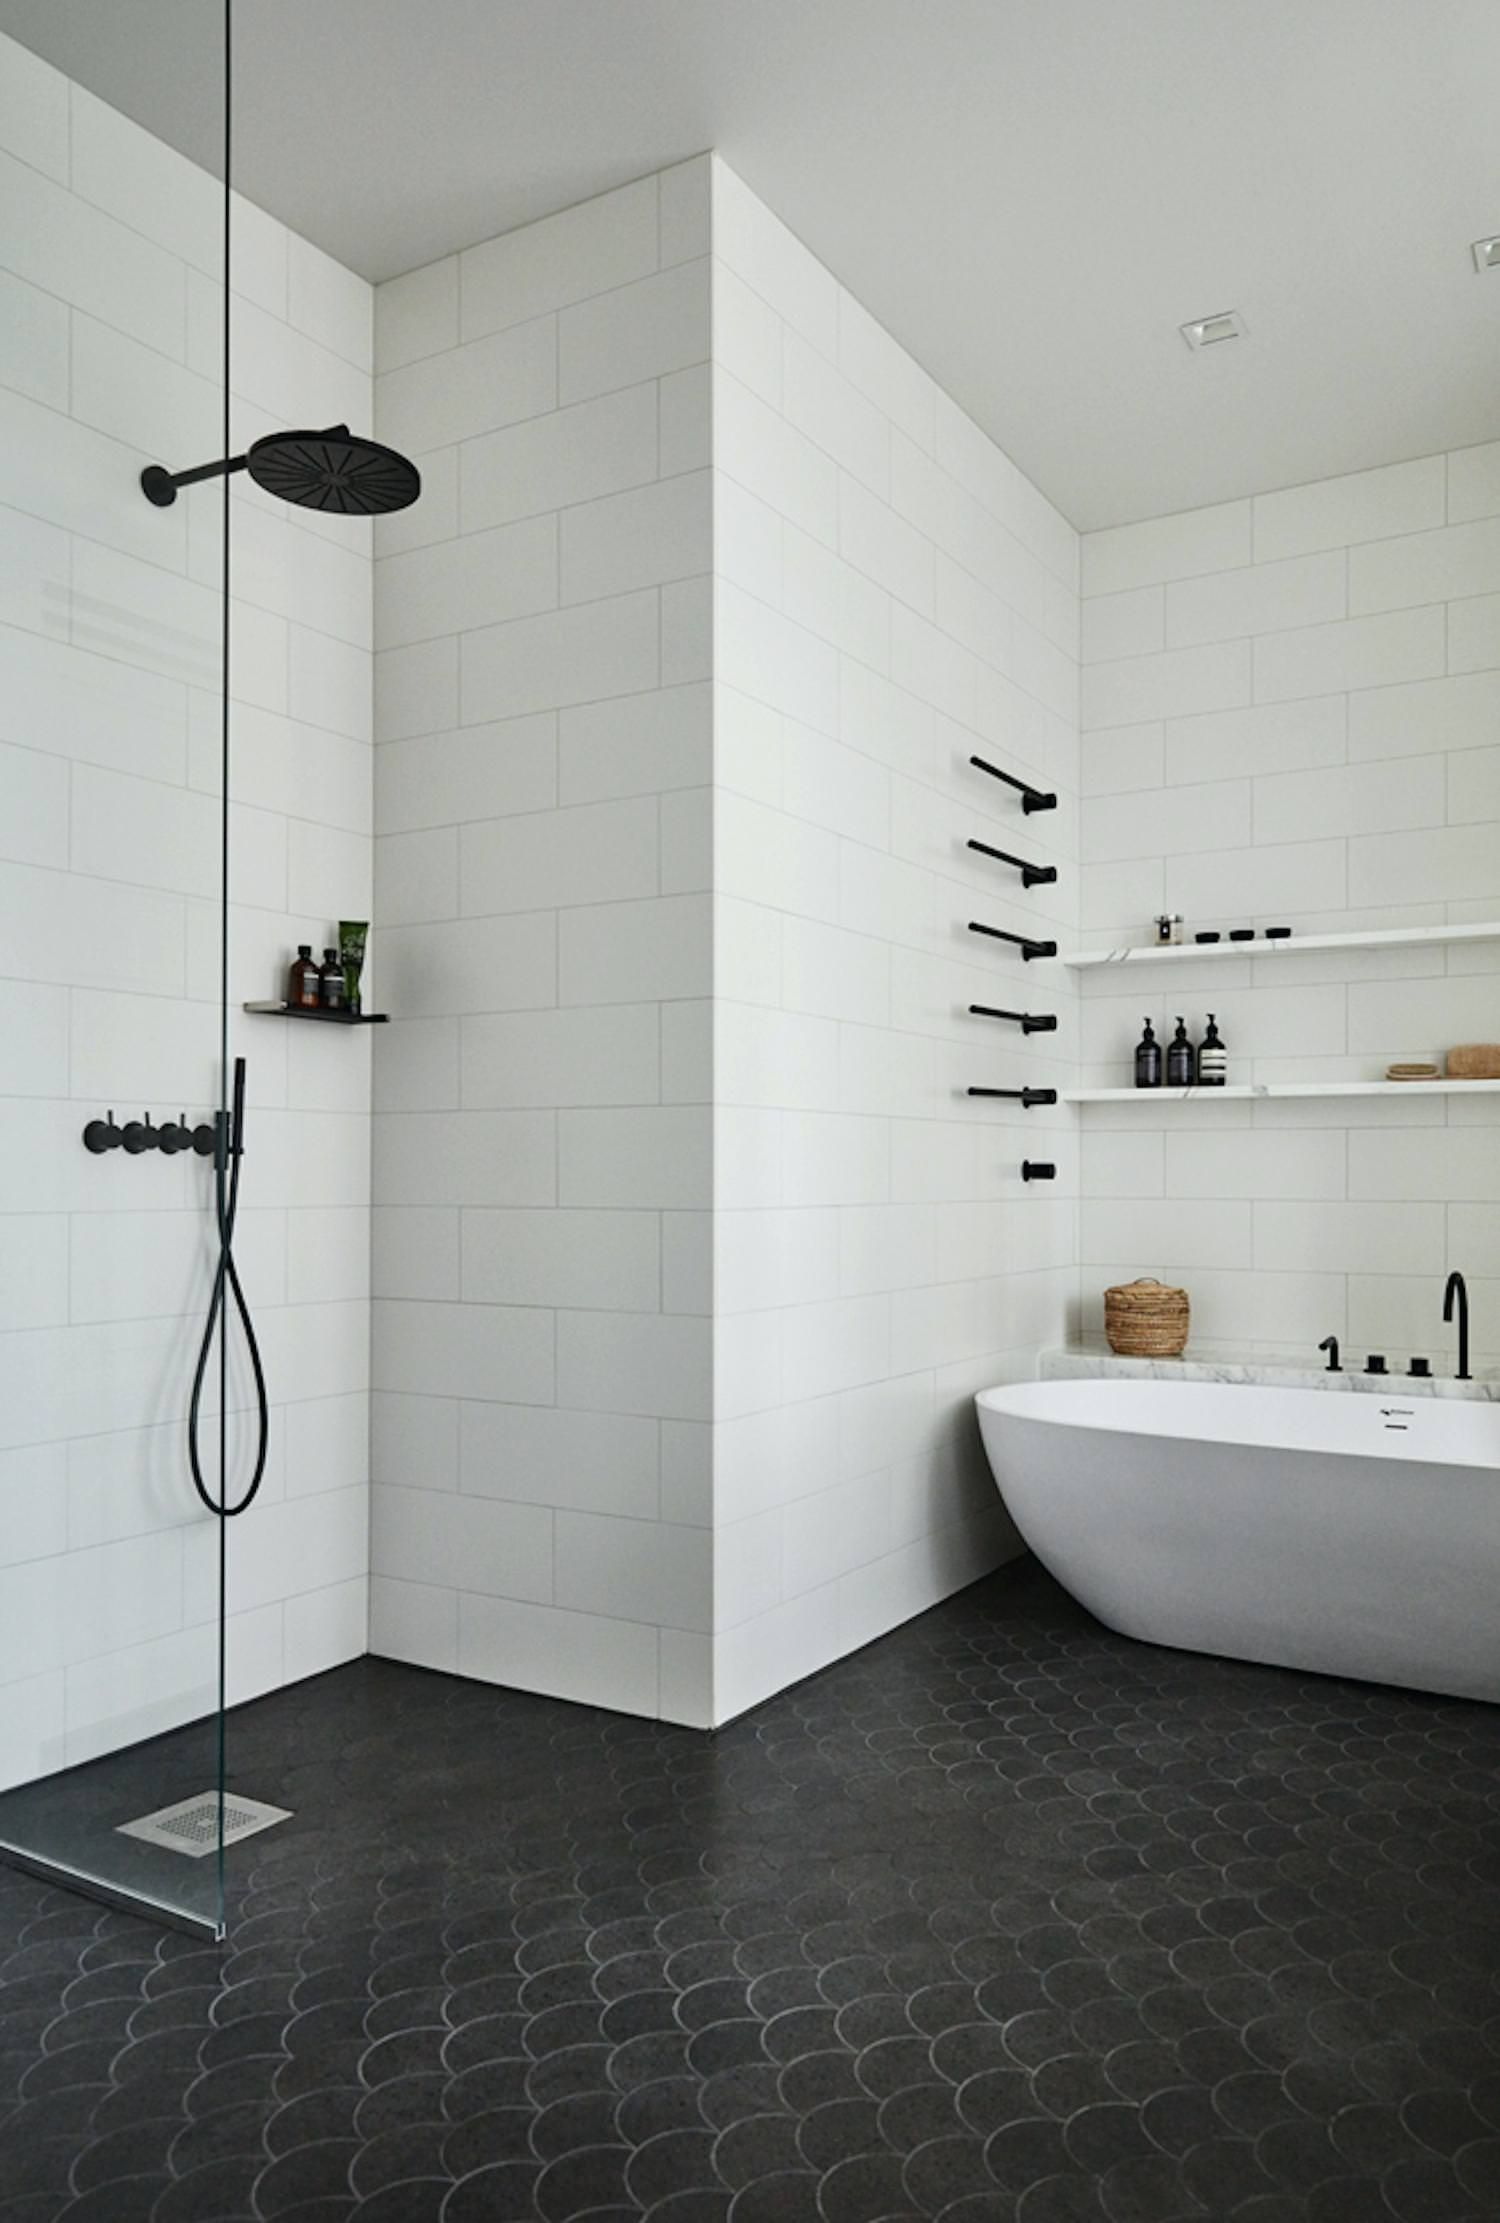 2018 Design Trends for the Bathroom | Bathroom black, Design trends ...